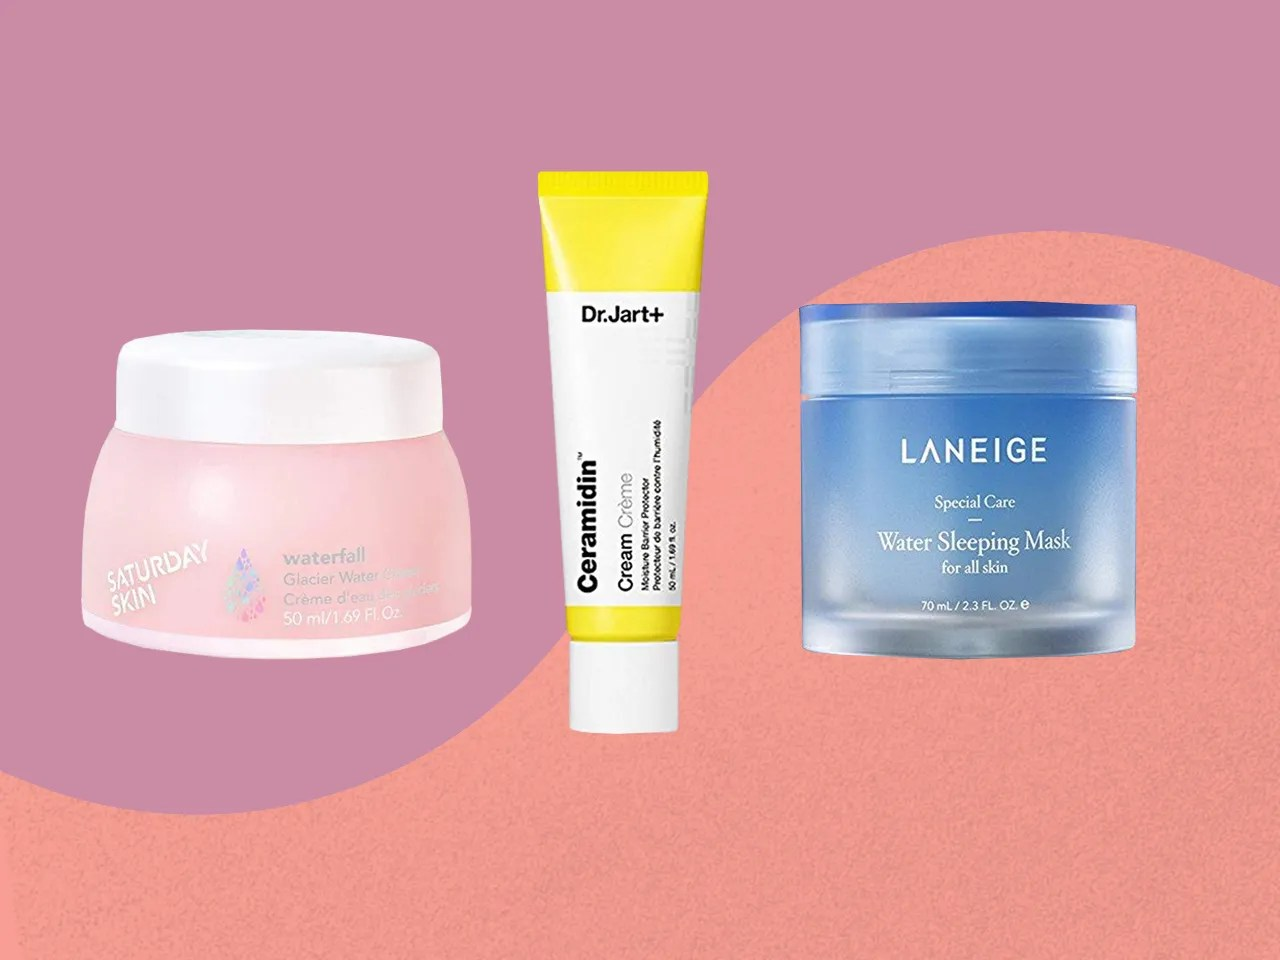 Best Skin Care Cream The 11 Best Korean Skin Care Products At Sephora According To